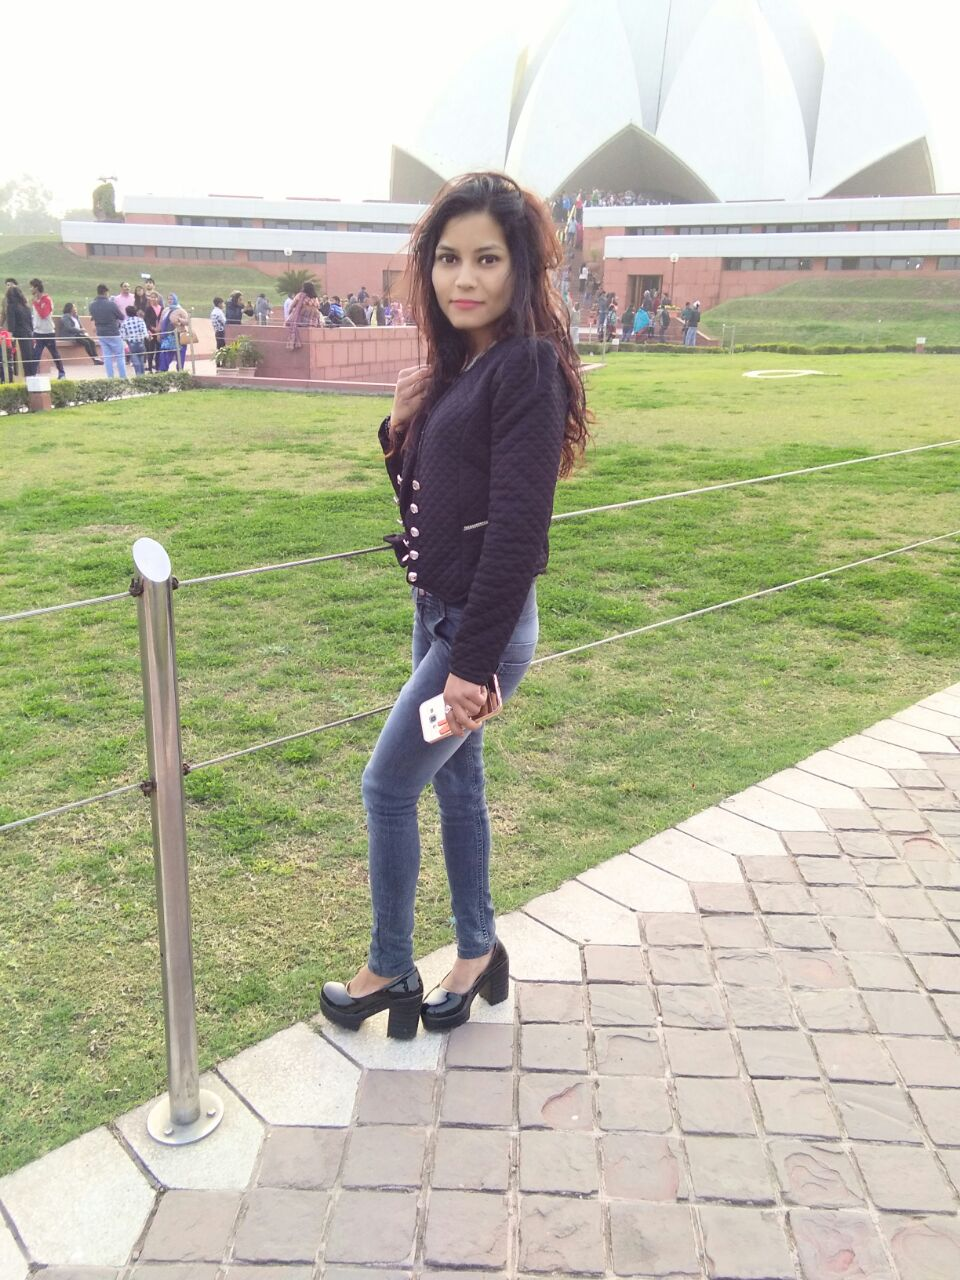 Gurgaon Call Girls |Gurgaon Escorts|Gurgaon call Girls +919599267198|Escorts In GURGAON | Call Girls in Gurgaon|AEROCITY HOTEL CALL GIRLS |AEROCITY ESCORTS |GURGAON SEX GIRLS|HIRE CALL GIRLS ONLINERussian Call Girl Service waiting for your  Amazing Pleasure and fun Activites  You can feel real and amazing pleasure and fun Escorts in Gurgaon Call Girls In Gurgaon-Escorts Gurgaon-9654467663  best escorts in gurgaon  Call-Girls-In-Gurgaon-Escorts-Gurgaon-9654467663  Top Model Gurgaon Escorts provided that high profile Call Girls Service in Gurgaon Independent Escorts in Gurgaon. Call 965-4467663 for good-looking attractive Escort Call Girls Service In Gurgaon. Our Sweets Call Girls Gurgaon Naughty Female Call Girls Delhi NCR Call Girls in Gurgaon Hi Profile Gurgaon Escorts Agency Hotel Night Clubs & Sexy Escorts athttps://www.escortsingurgaon.club/…Sweets Call Girls Gurgaon | Night Clubs & Sexual Escorts Gurgaon: 9654467663Escorts AgencyBest Escort Services in Delhi NCRCall Girls in GurgaonCall Girls in DelhiNight Call Girls Now In Hotels. Female Escort Service - 24x7CallGirls. Contact JAMES, +919654467663 CALL GIRL SERVICES -https://www.escortsingurgaon.club/| ESCORT SERVICES DELHI NCR -https://www.escortsingurgaon.club/escort-services| CALL GIRLS IN GURGAON -https://www.escortsingurgaon.club/call-girls-in-gurgaon.html| CALL GIRLS IN DELHI -https://www.escortsingurgaon.club/call-girls-in-delhi.html| CALL 9654467663. 24x7 Escort Services – We are Delhi NCR's LeadingEscorts Service Agency Delhi. We offer »»Top Escort Services in Delhi NCRLikeEscorts in GurgaonAndEscorts in Delhi. Hire Top Class Female Models Call Girls In Delhi, Call Girls In Gurgaon and Noida In and Out Call Service At Lowest Price. Call 9654467663 Now      Sexy Indian Escort Girl 1  Any Escort Girl displayed here exclusvely available for instant booking, Check our Contact Details for more informaiton. Check more about Us, Find a top class escort girl only at HIfi Model Escorts Gurgaon  Read More    Se